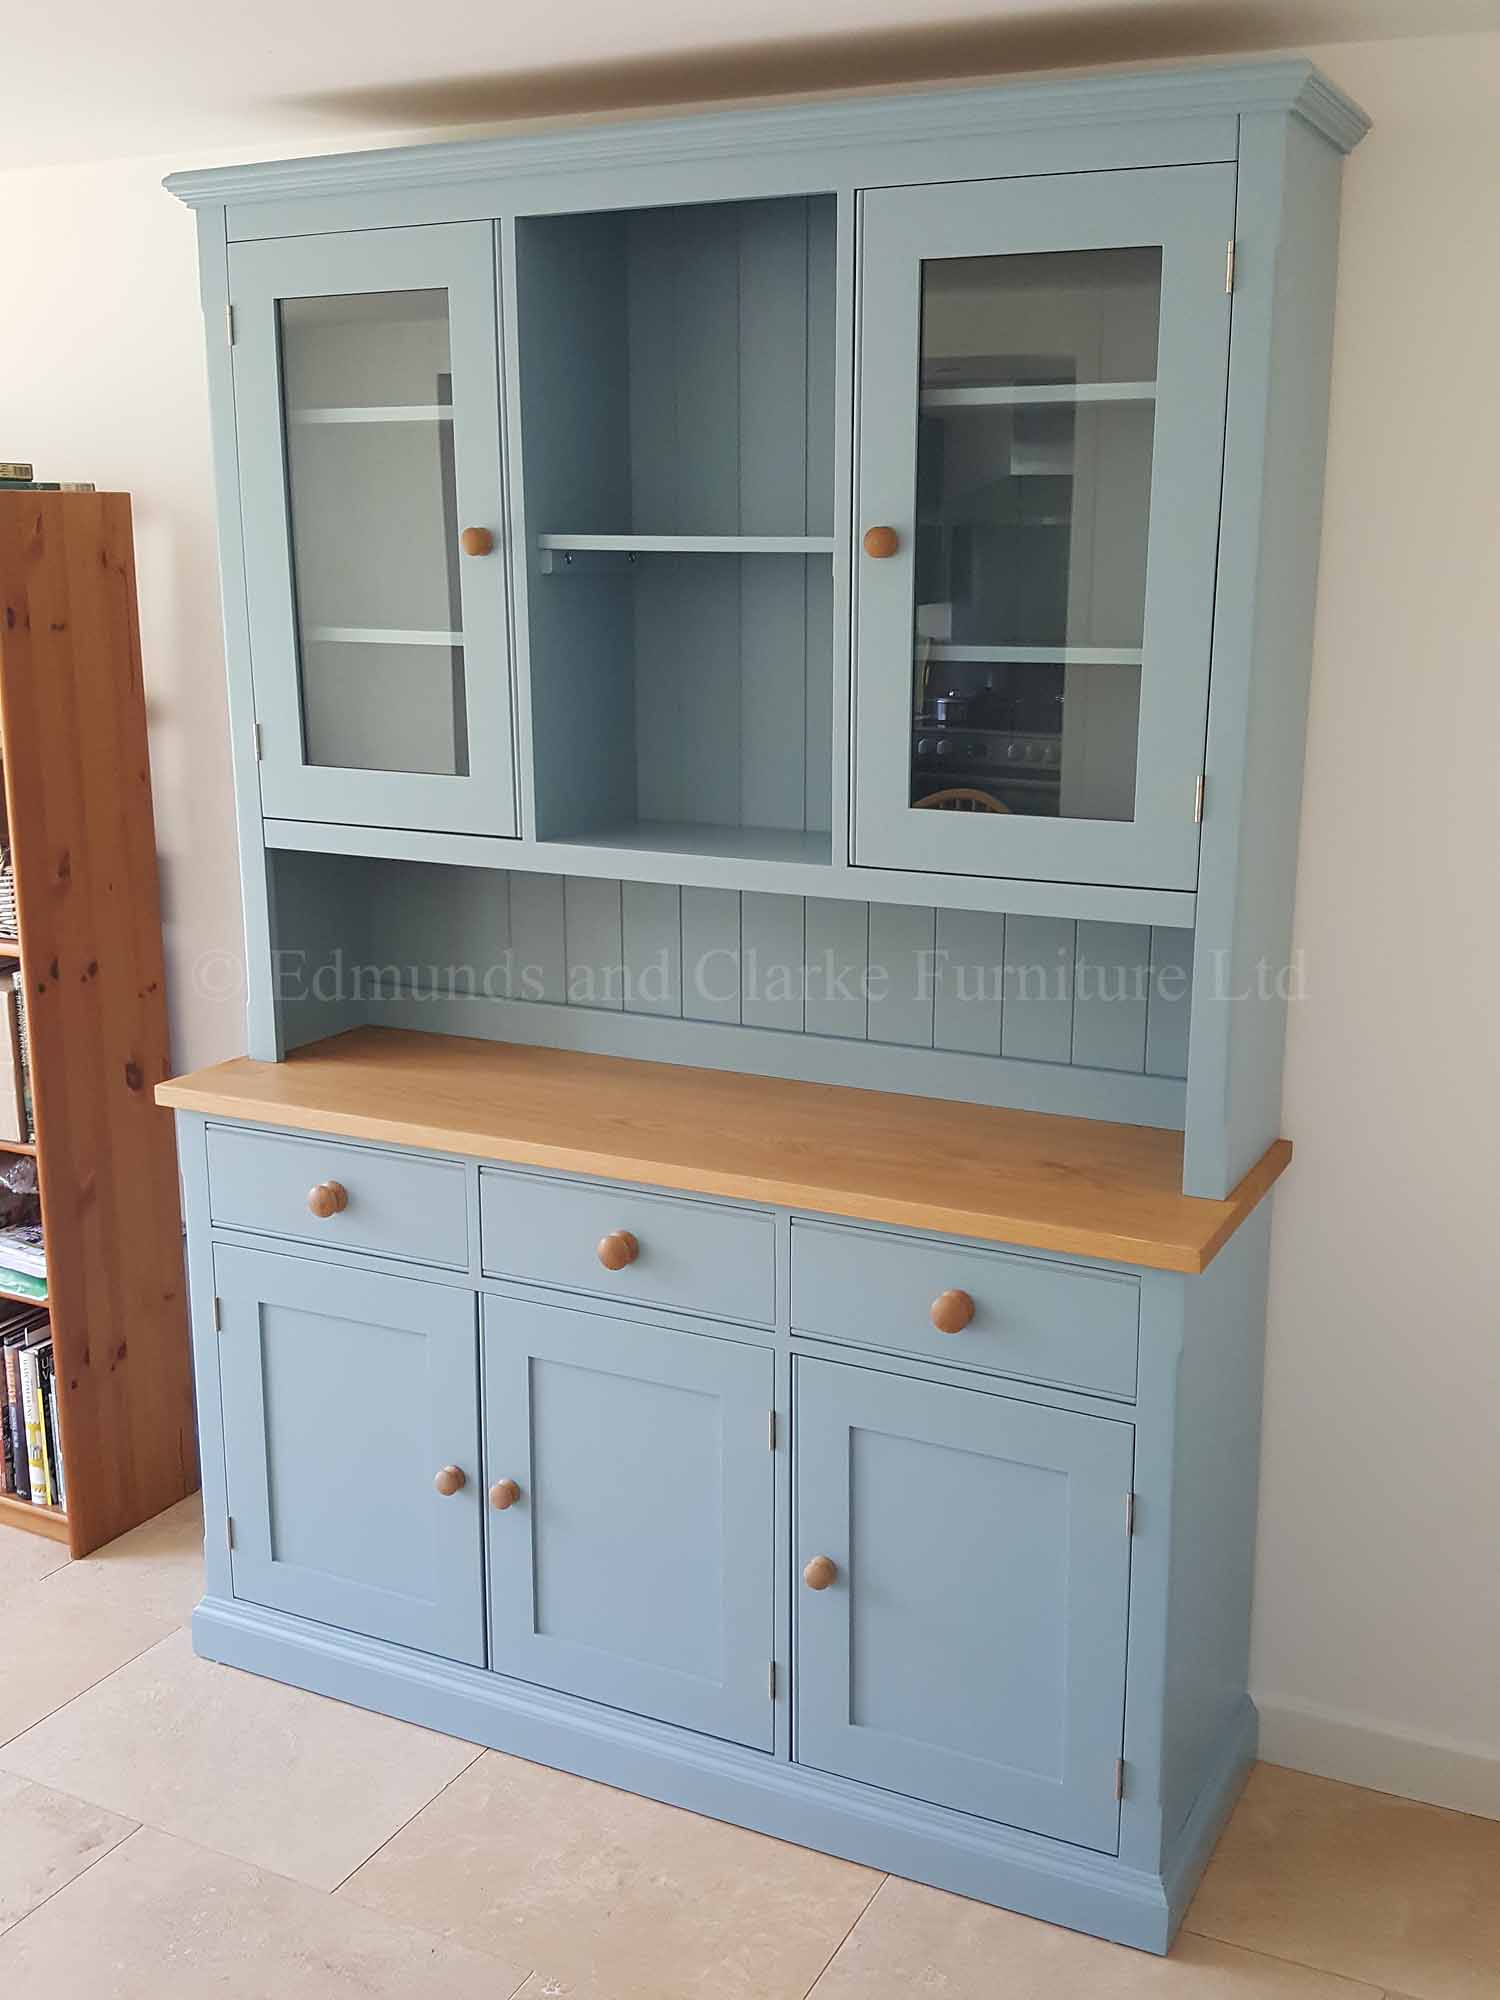 Painted 5ft dresser with glazed doors and open central section in rack